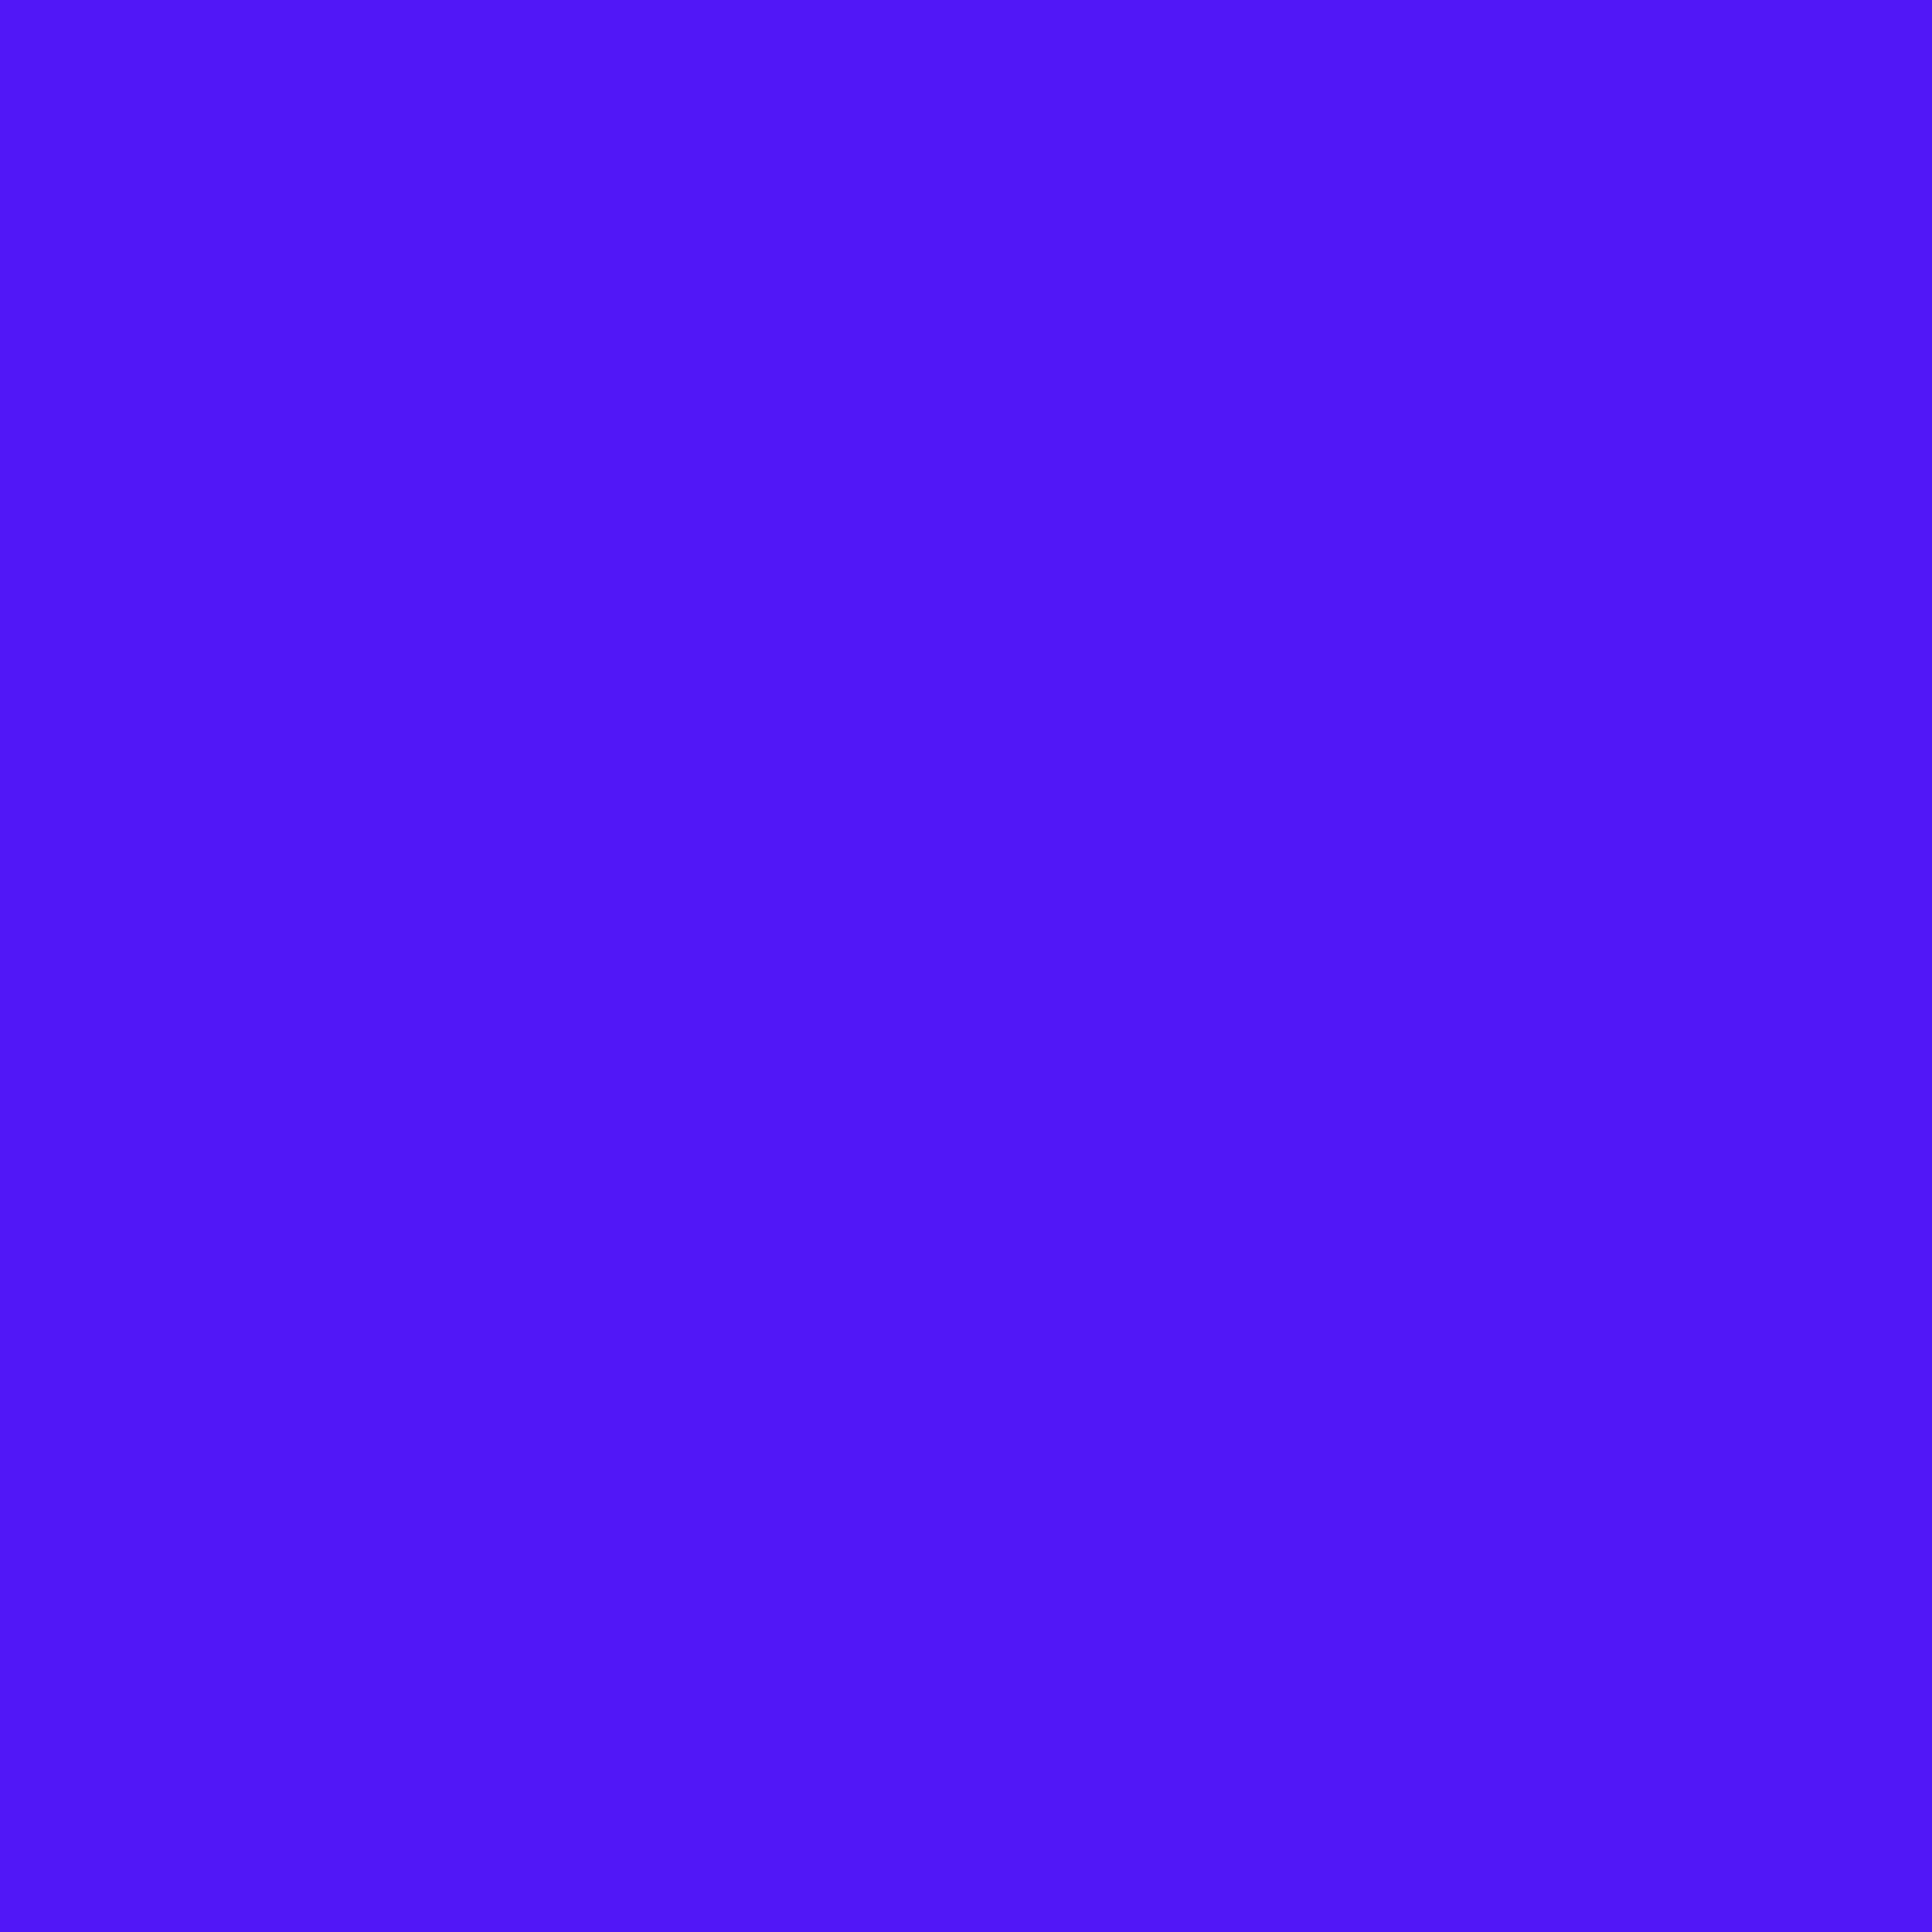 2048x2048 Han Purple Solid Color Background